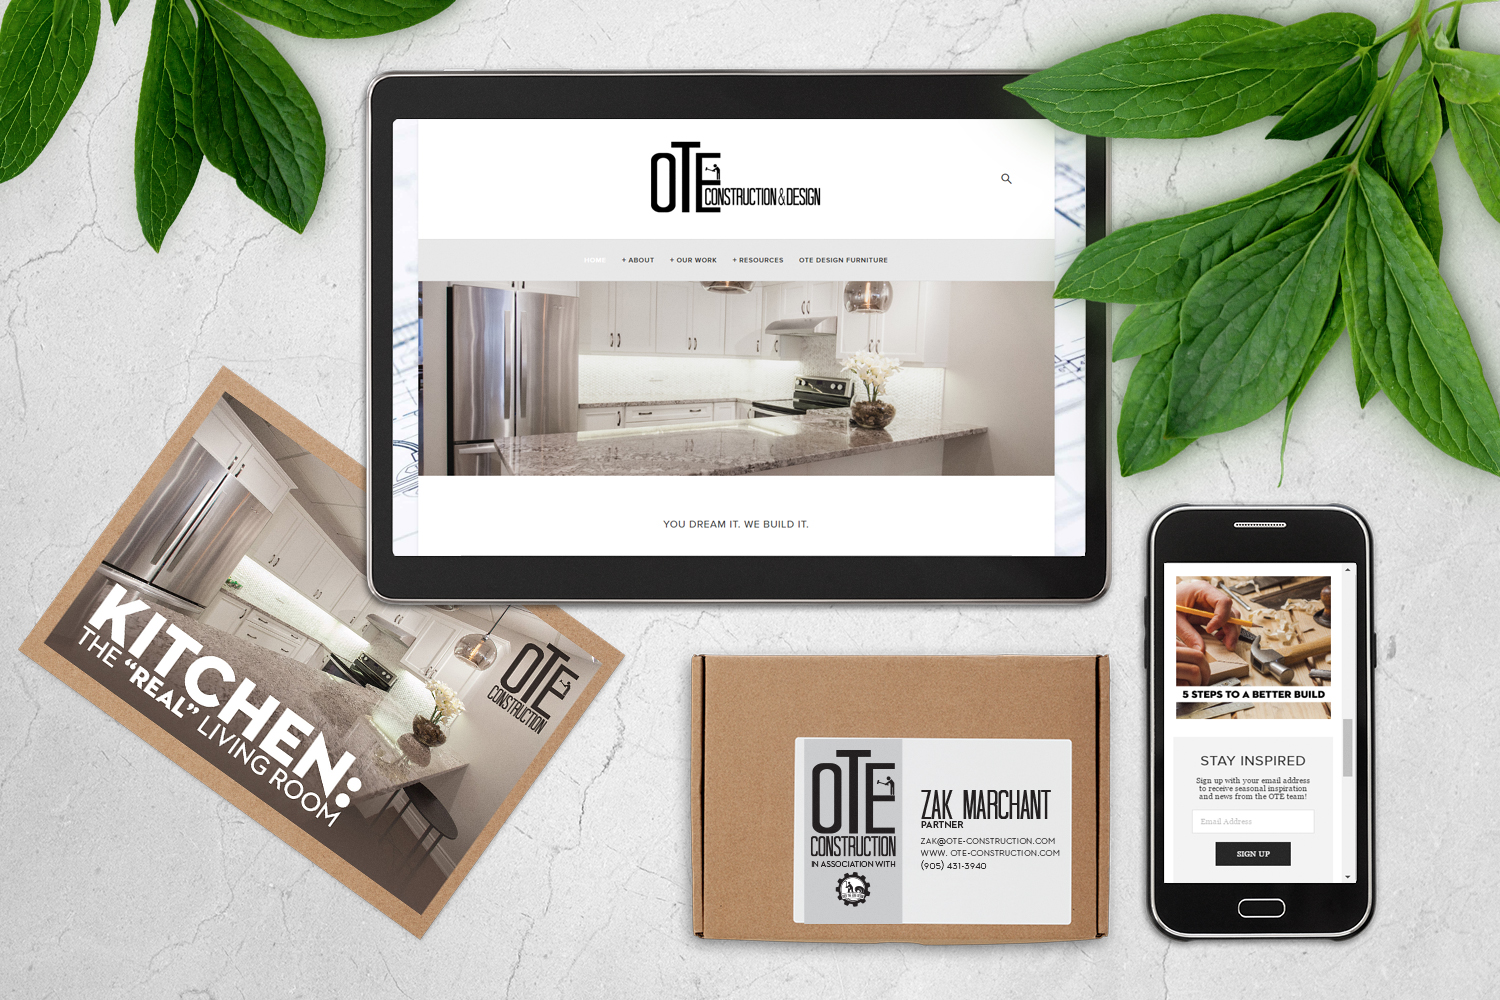 OTE CONSTRUCTION & DESIGN  From initial logo creation for a small design firm to a fully successful construction and design company;Marchant Image has provided complete marketing solutions and design collateral for online and print based marketing. We are responsible for all social media outlets, web design, SEO, online advertising and special event marketing for this spectacular company!   WEBSITE - FACEBOOK - INSTAGRAM - PINTEREST